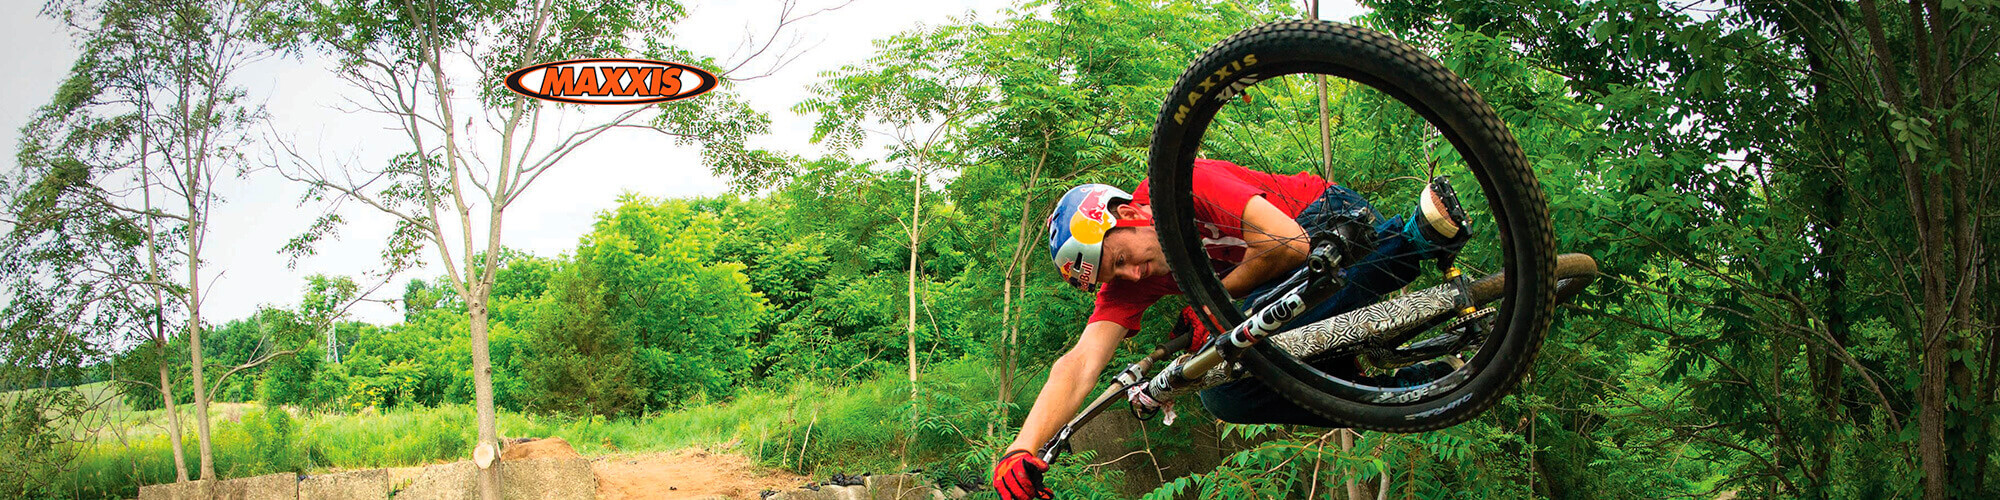 Banner Maxxis